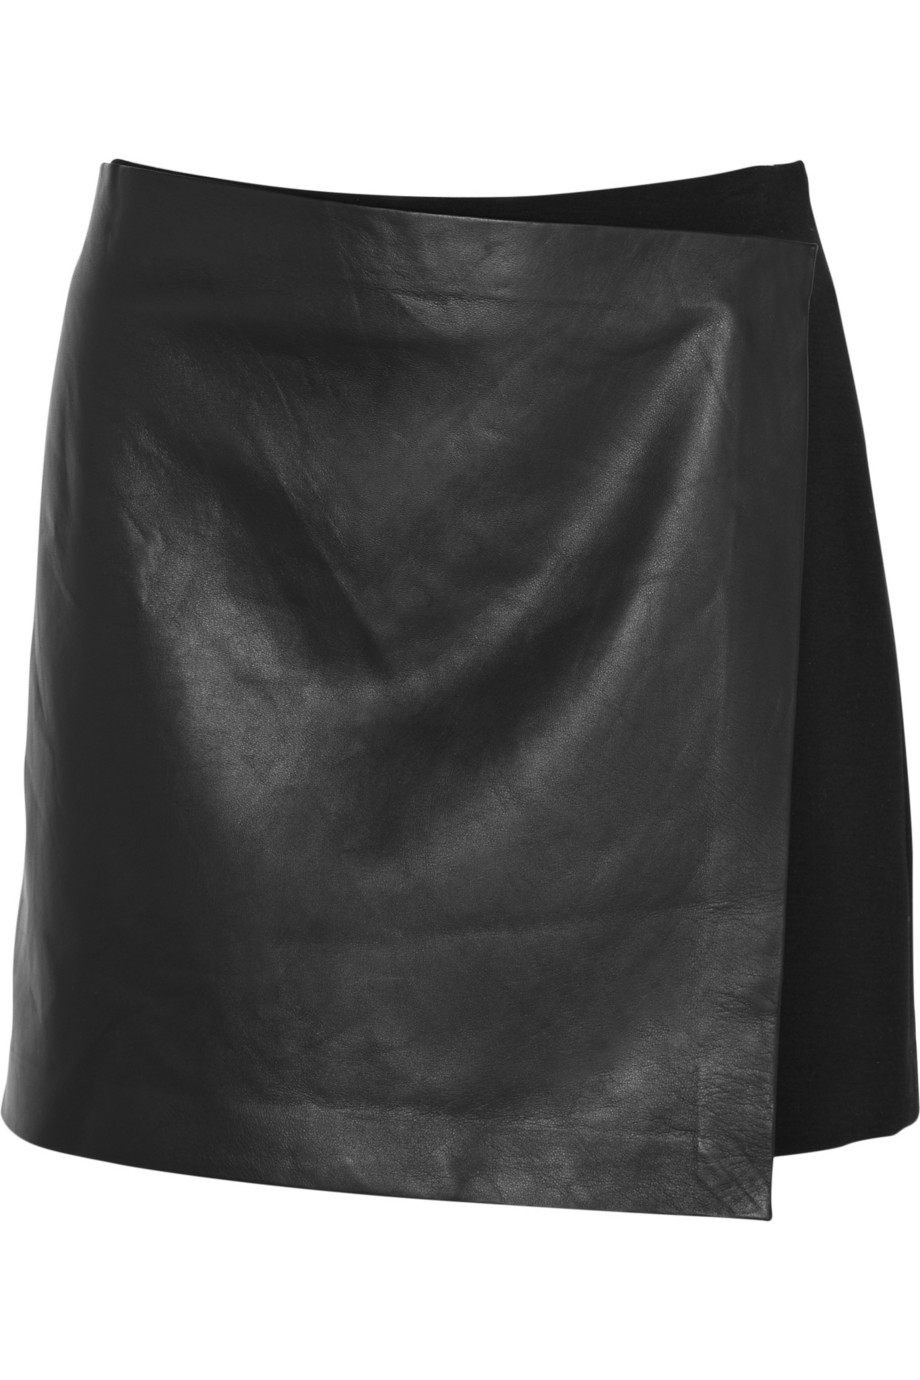 Theory Stilla Leather And Stretch-jersey Wrap Mini Skirt in Black ...